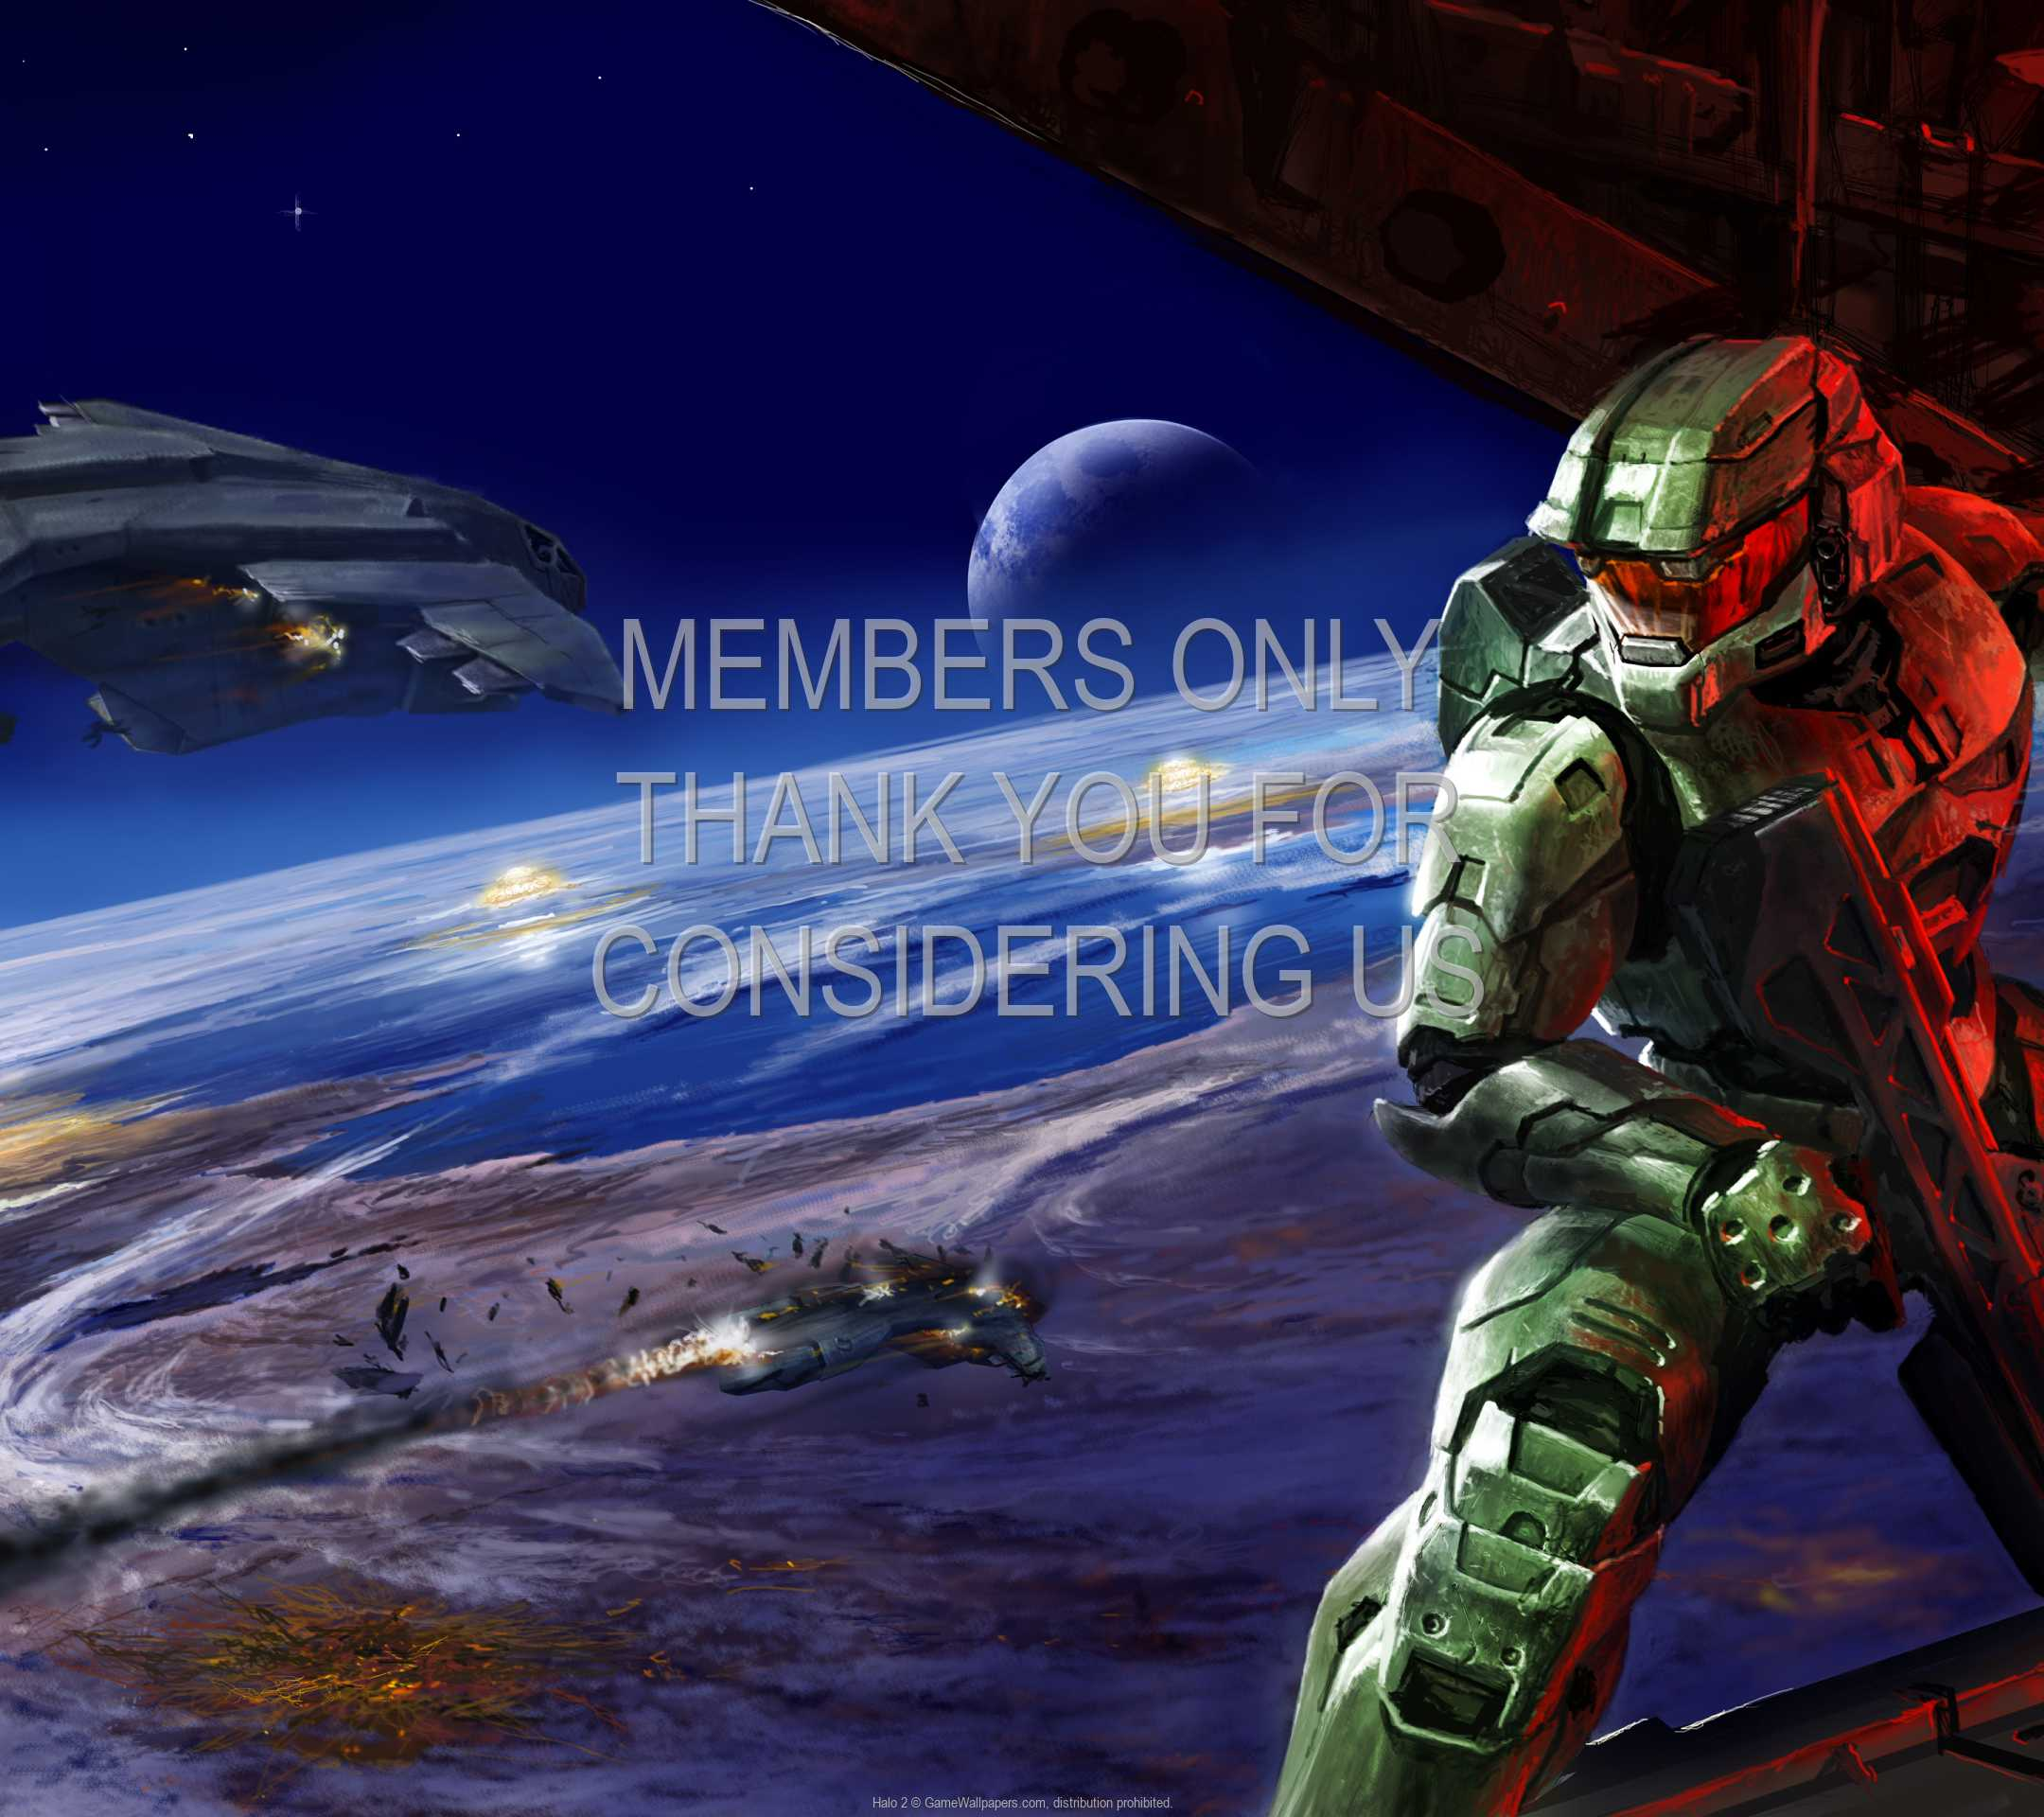 Halo 2 1080p Horizontal Mobile wallpaper or background 18